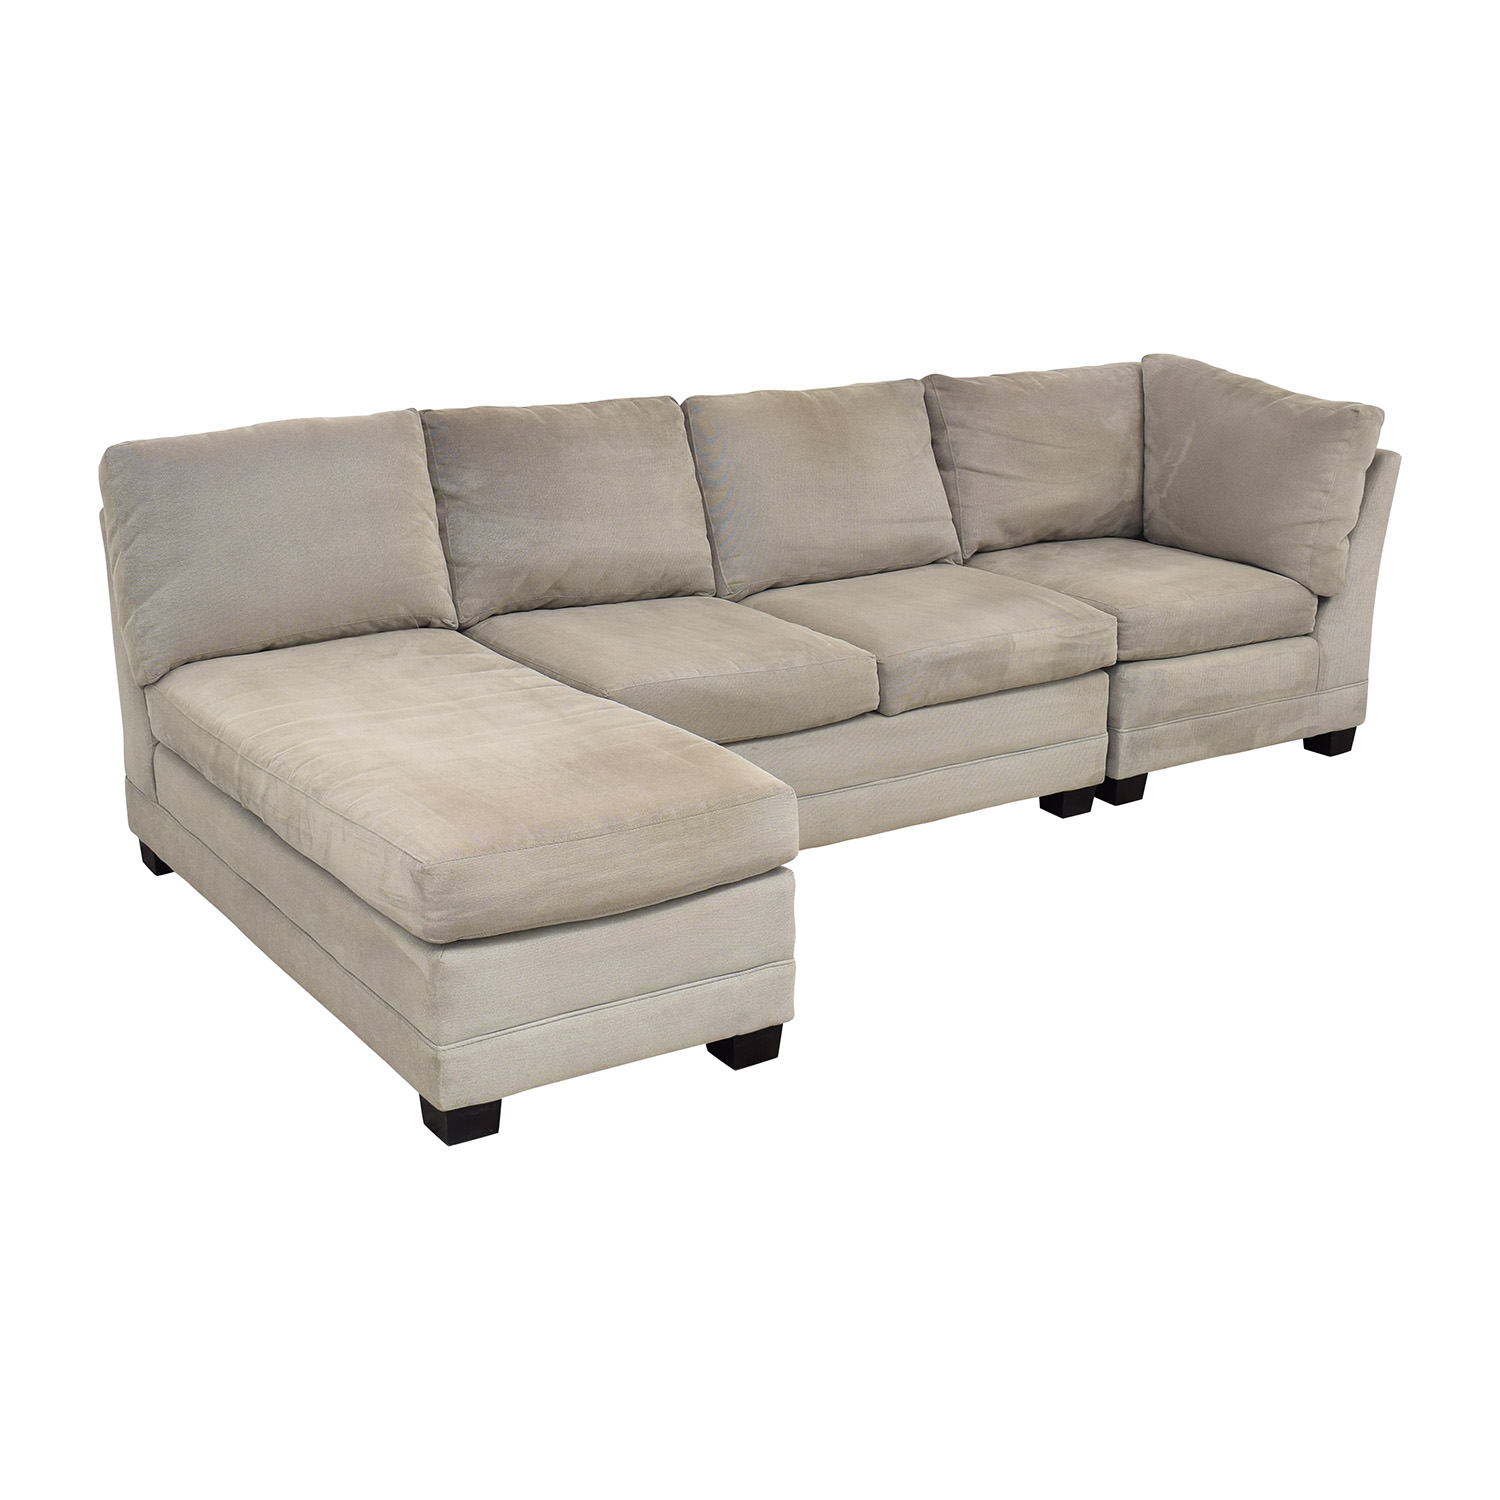 buy Crate & Barrel Sectional Sofa with Chaise Crate & Barrel Sectionals